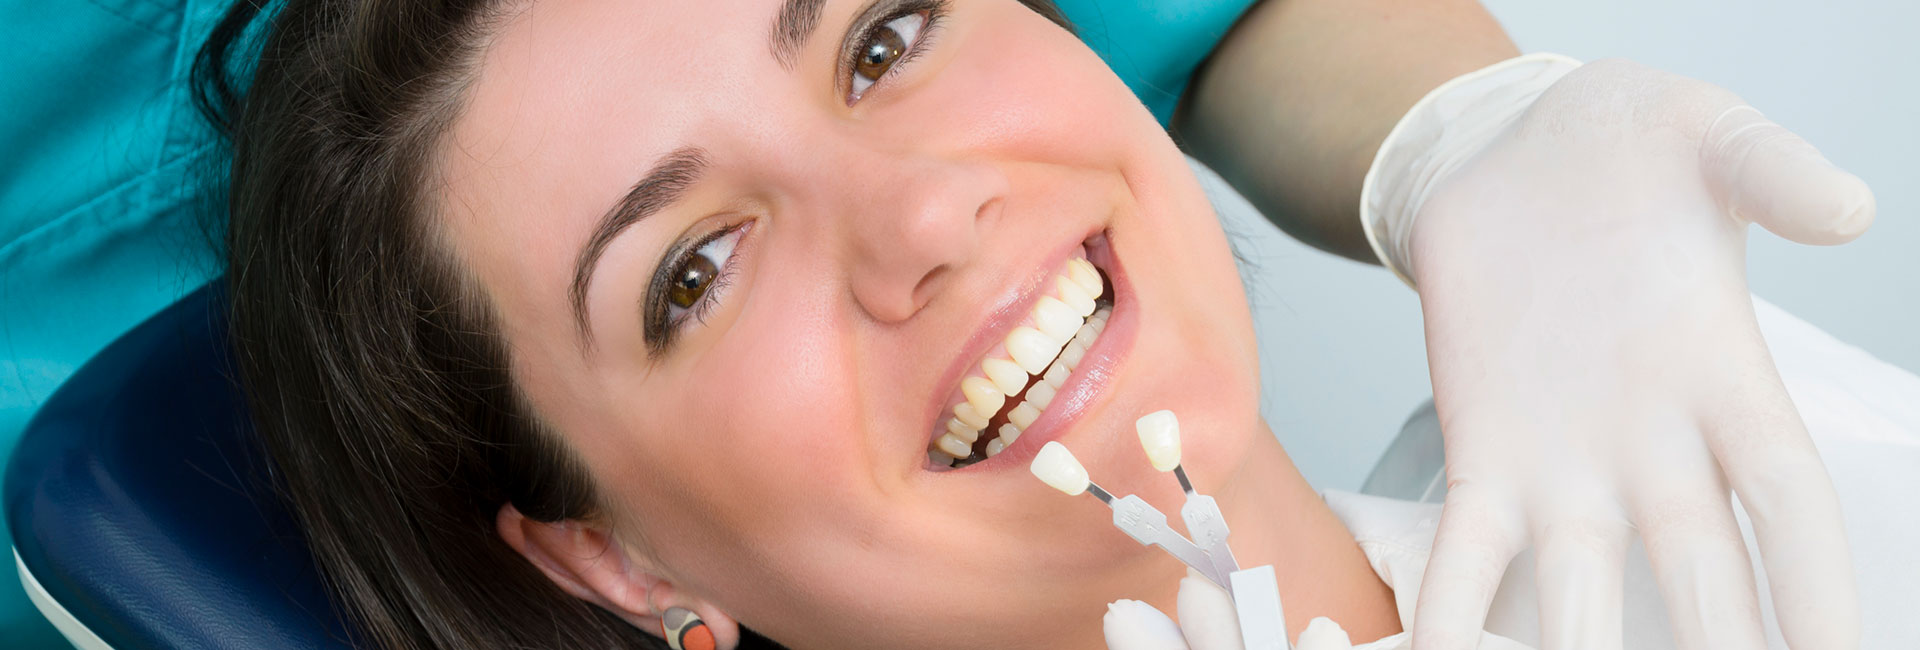 A Woman trying out dental implants